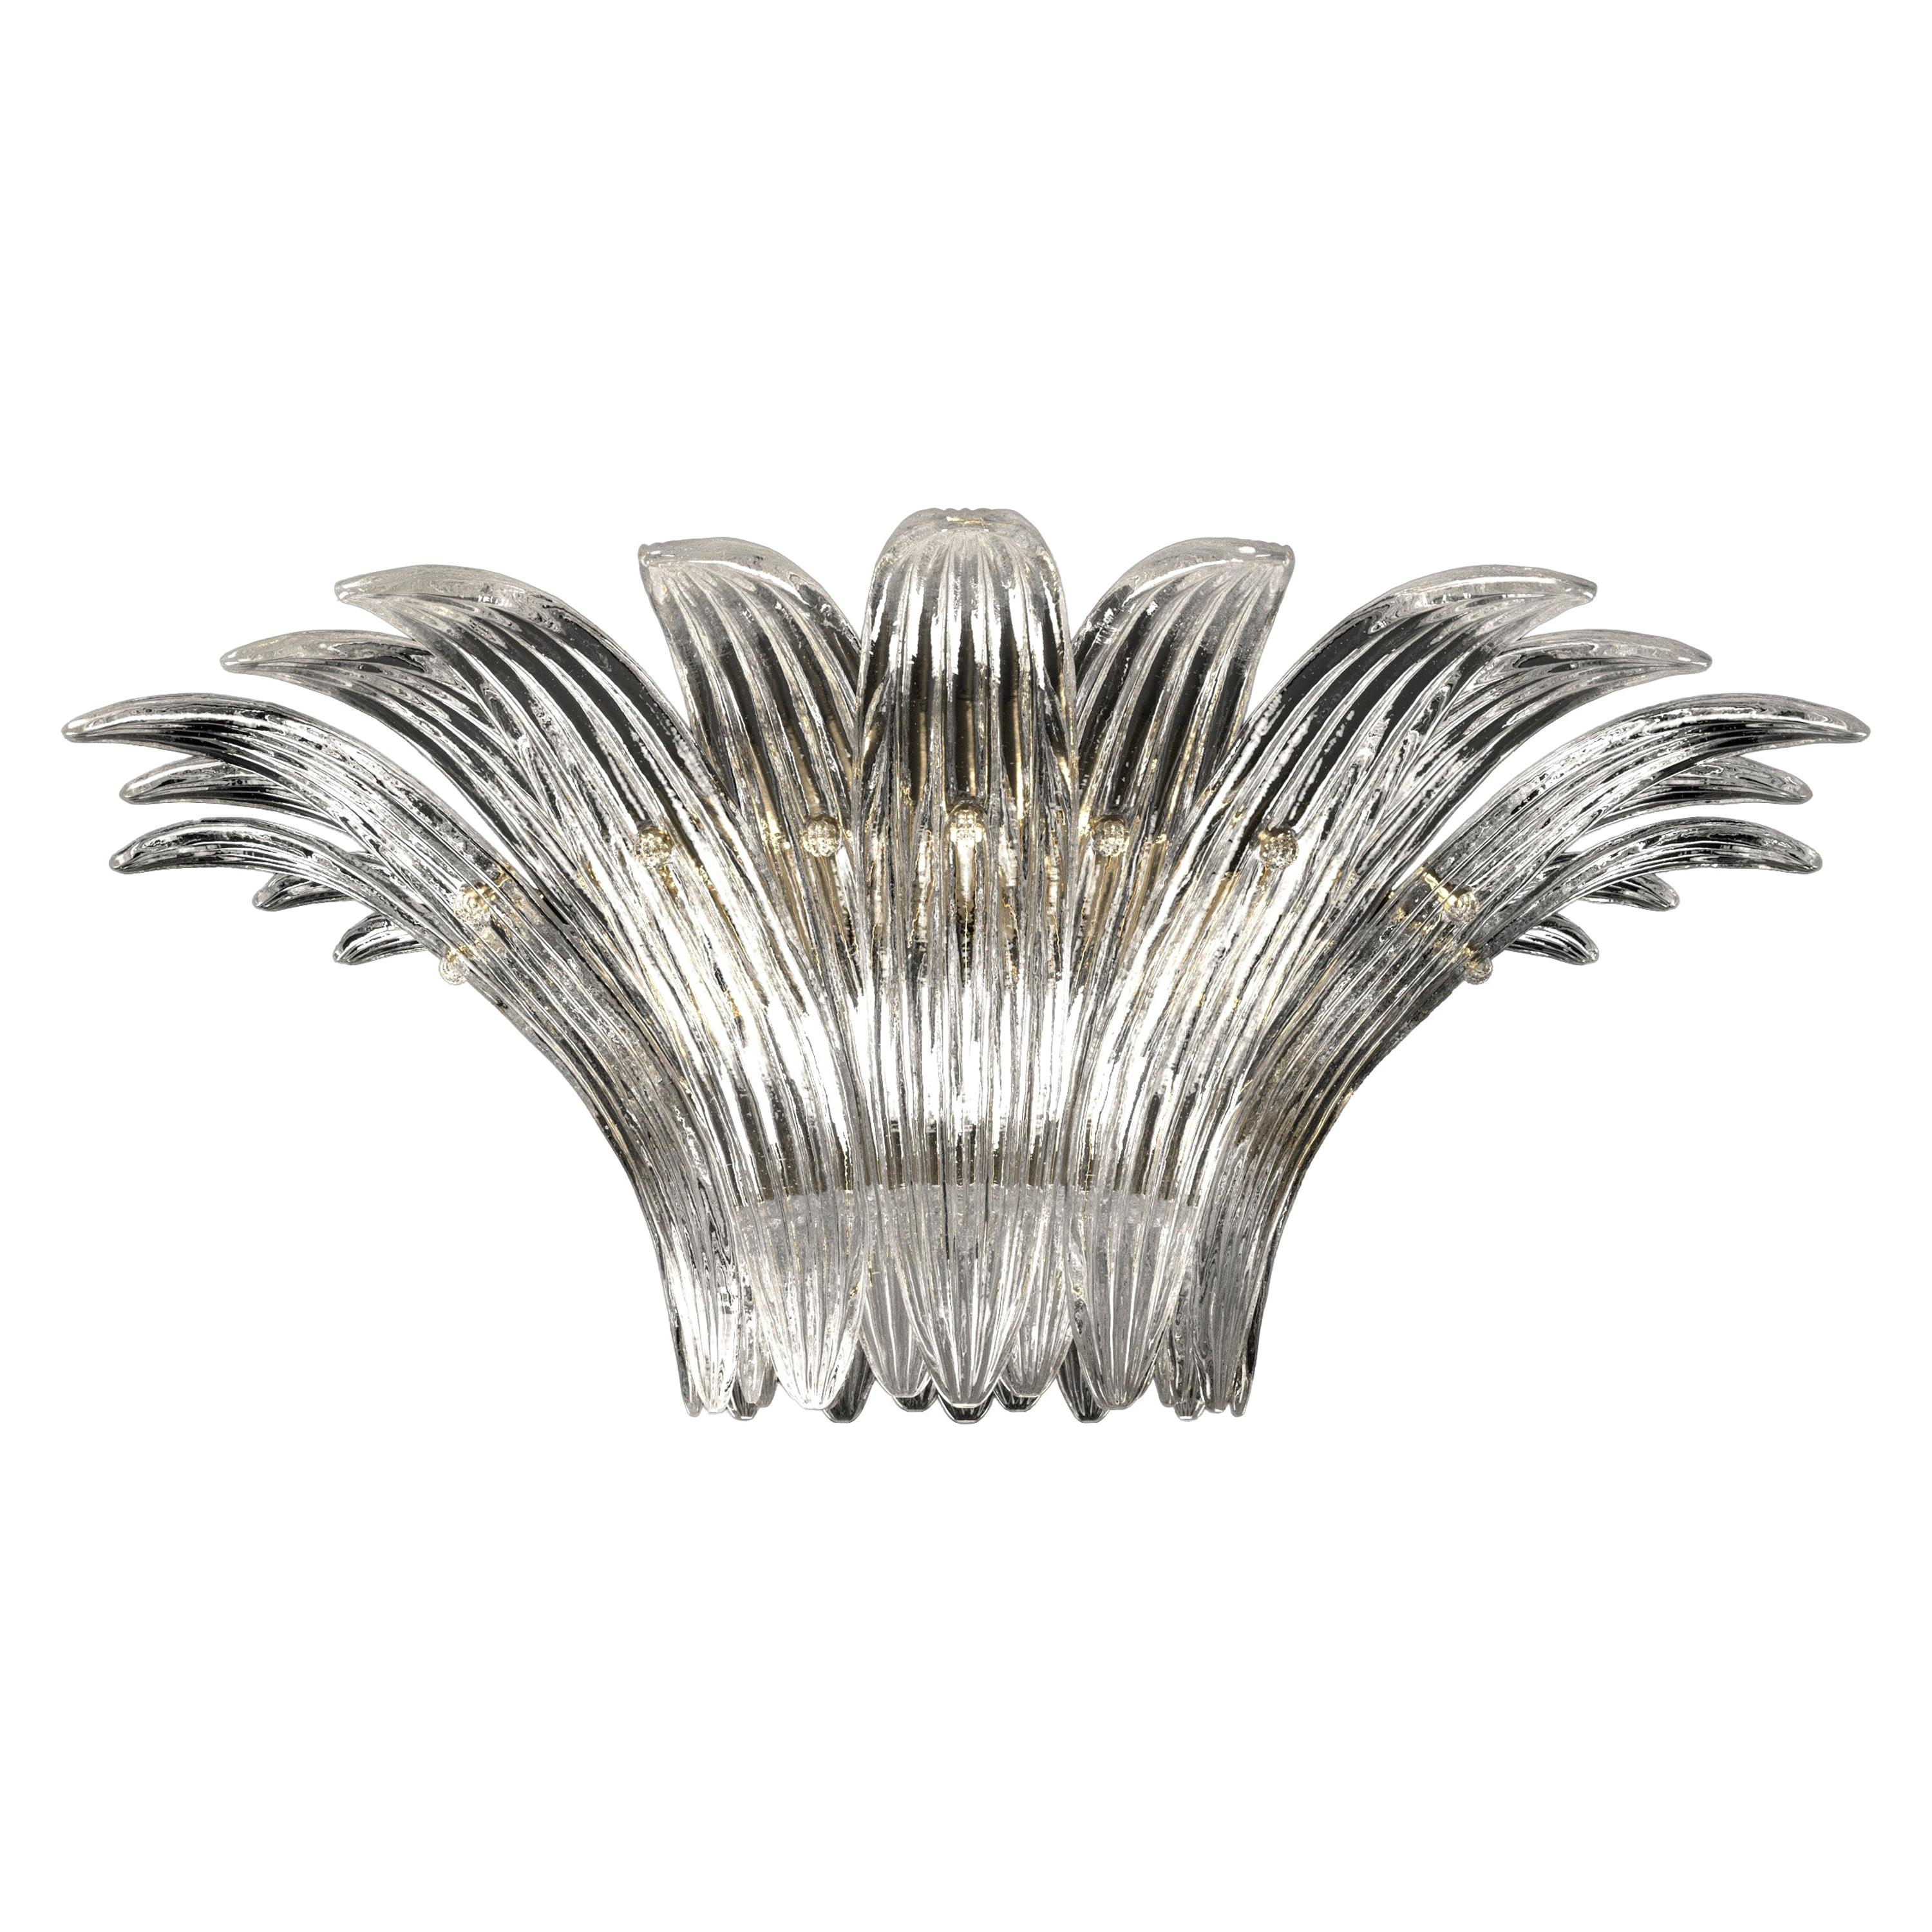 Palmette 5310 3 Ceiling Lamp in Crystal Glass, by Barovier&Toso